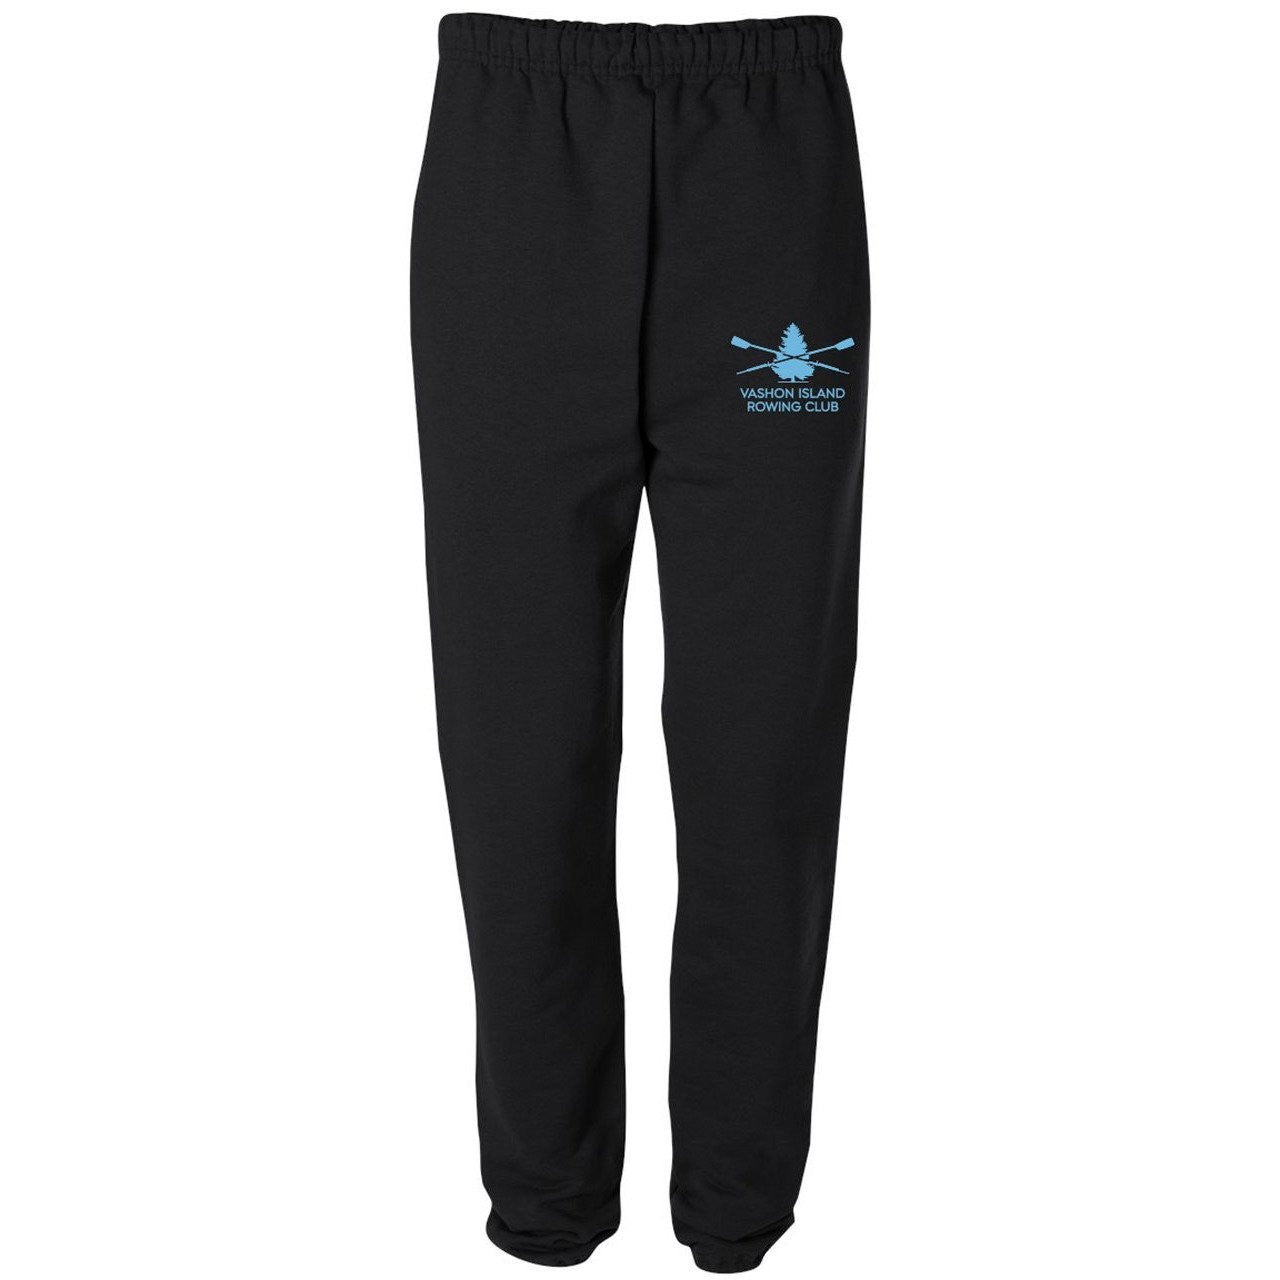 Vashon Crew Sweatpants